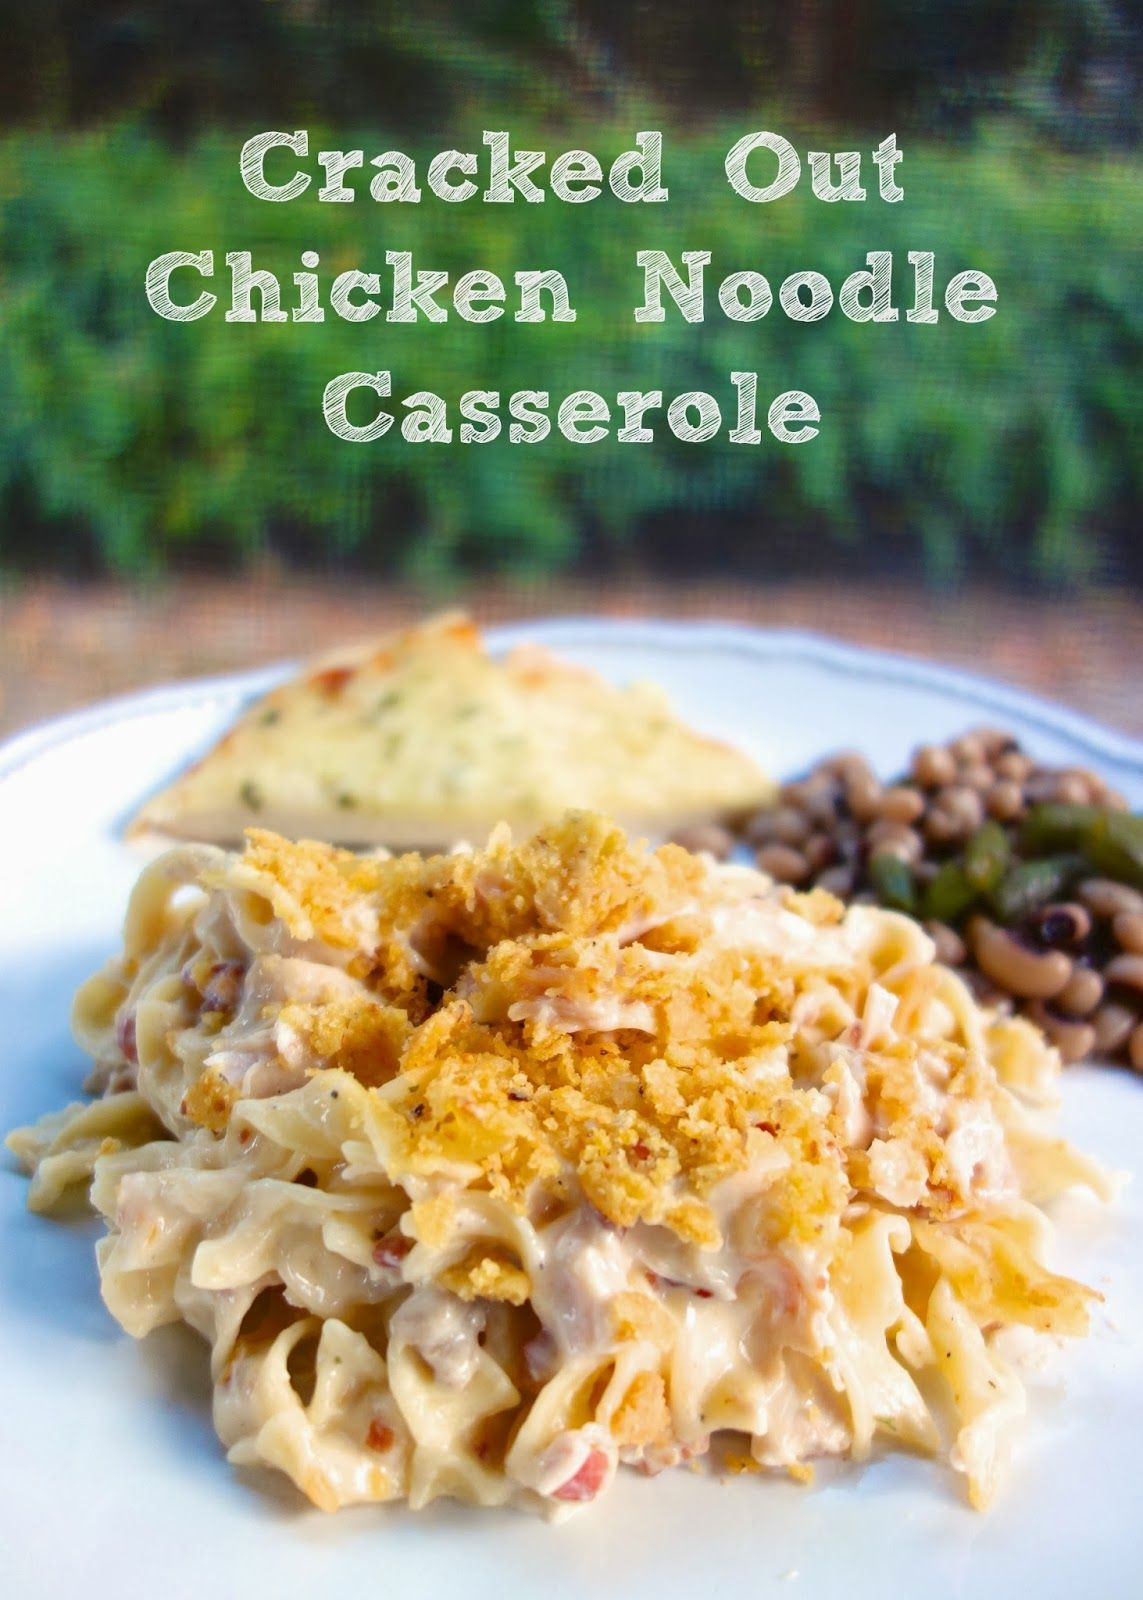 Cracked Out Chicken Noodle Casserole Recipe Chicken Noodles Chicken Soup Cheddar Chicken Recipes Casserole Best Chicken Casserole Noodle Casserole Recipes